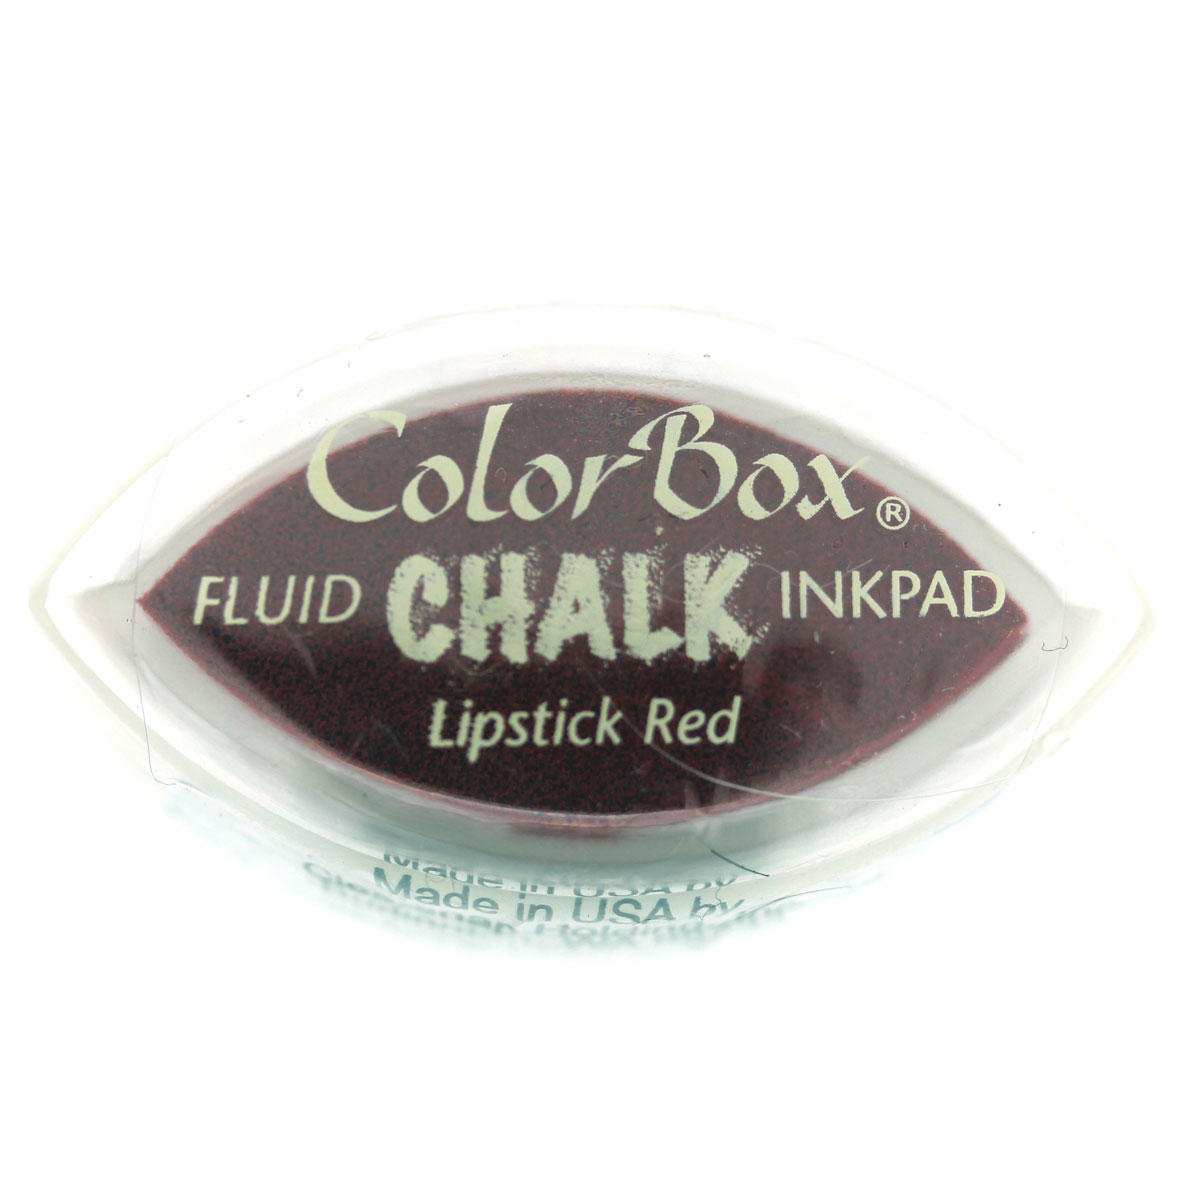 From Colourbox  Lipstick Red  For Rubber Stamping  USA  45mm x 25mm